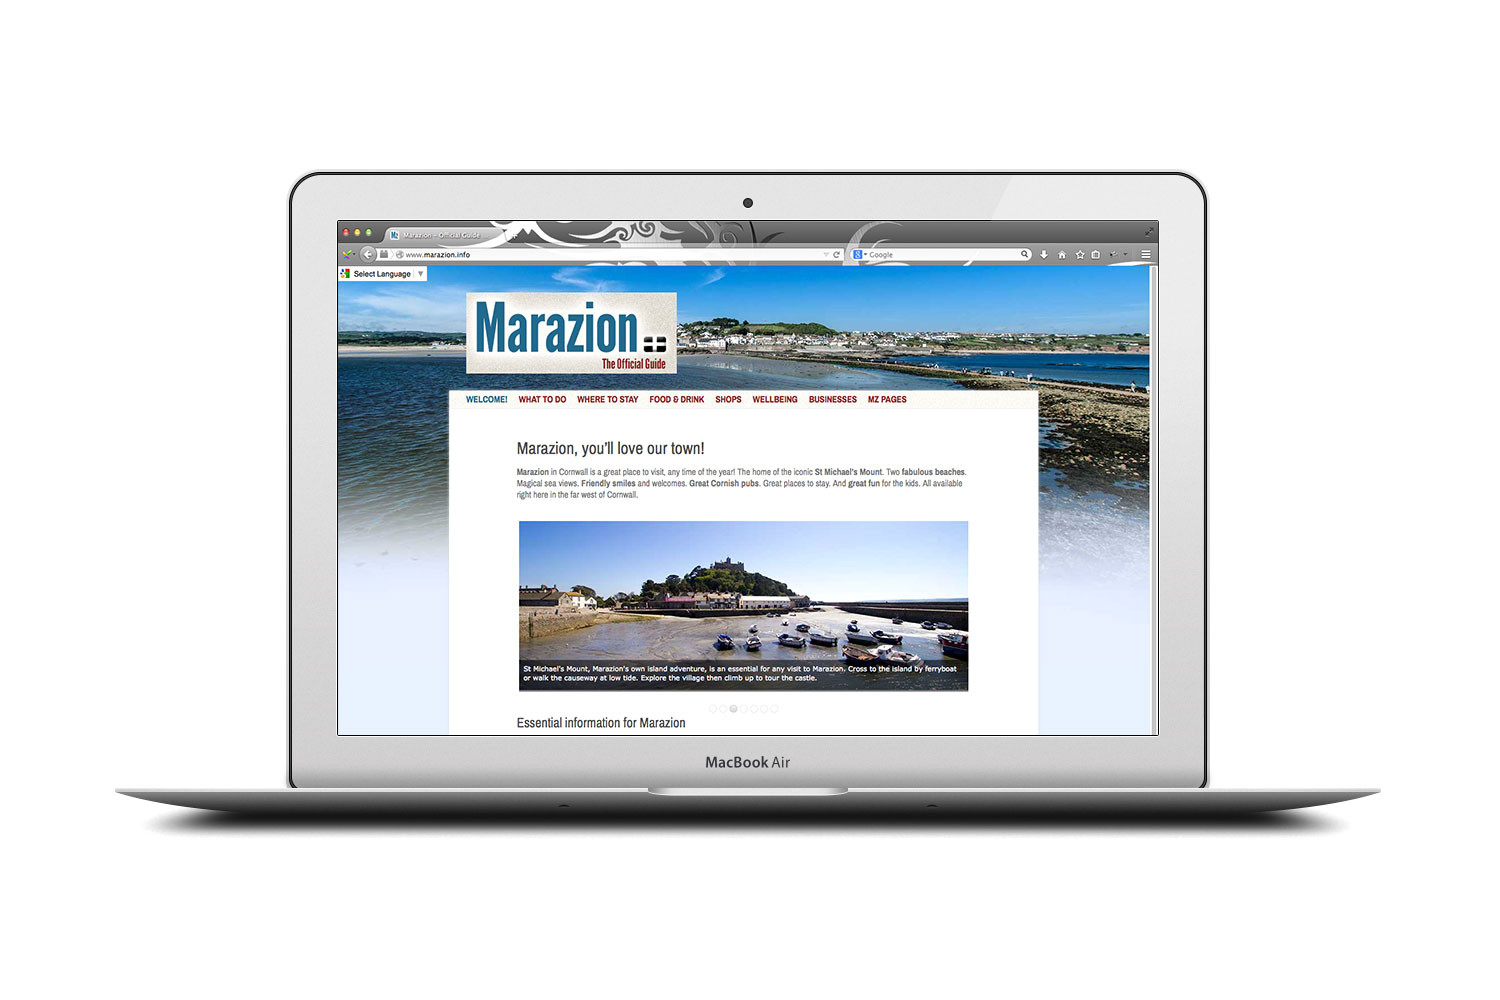 marazion.info tourist website from cornishrock in Cornwall, professional website designers